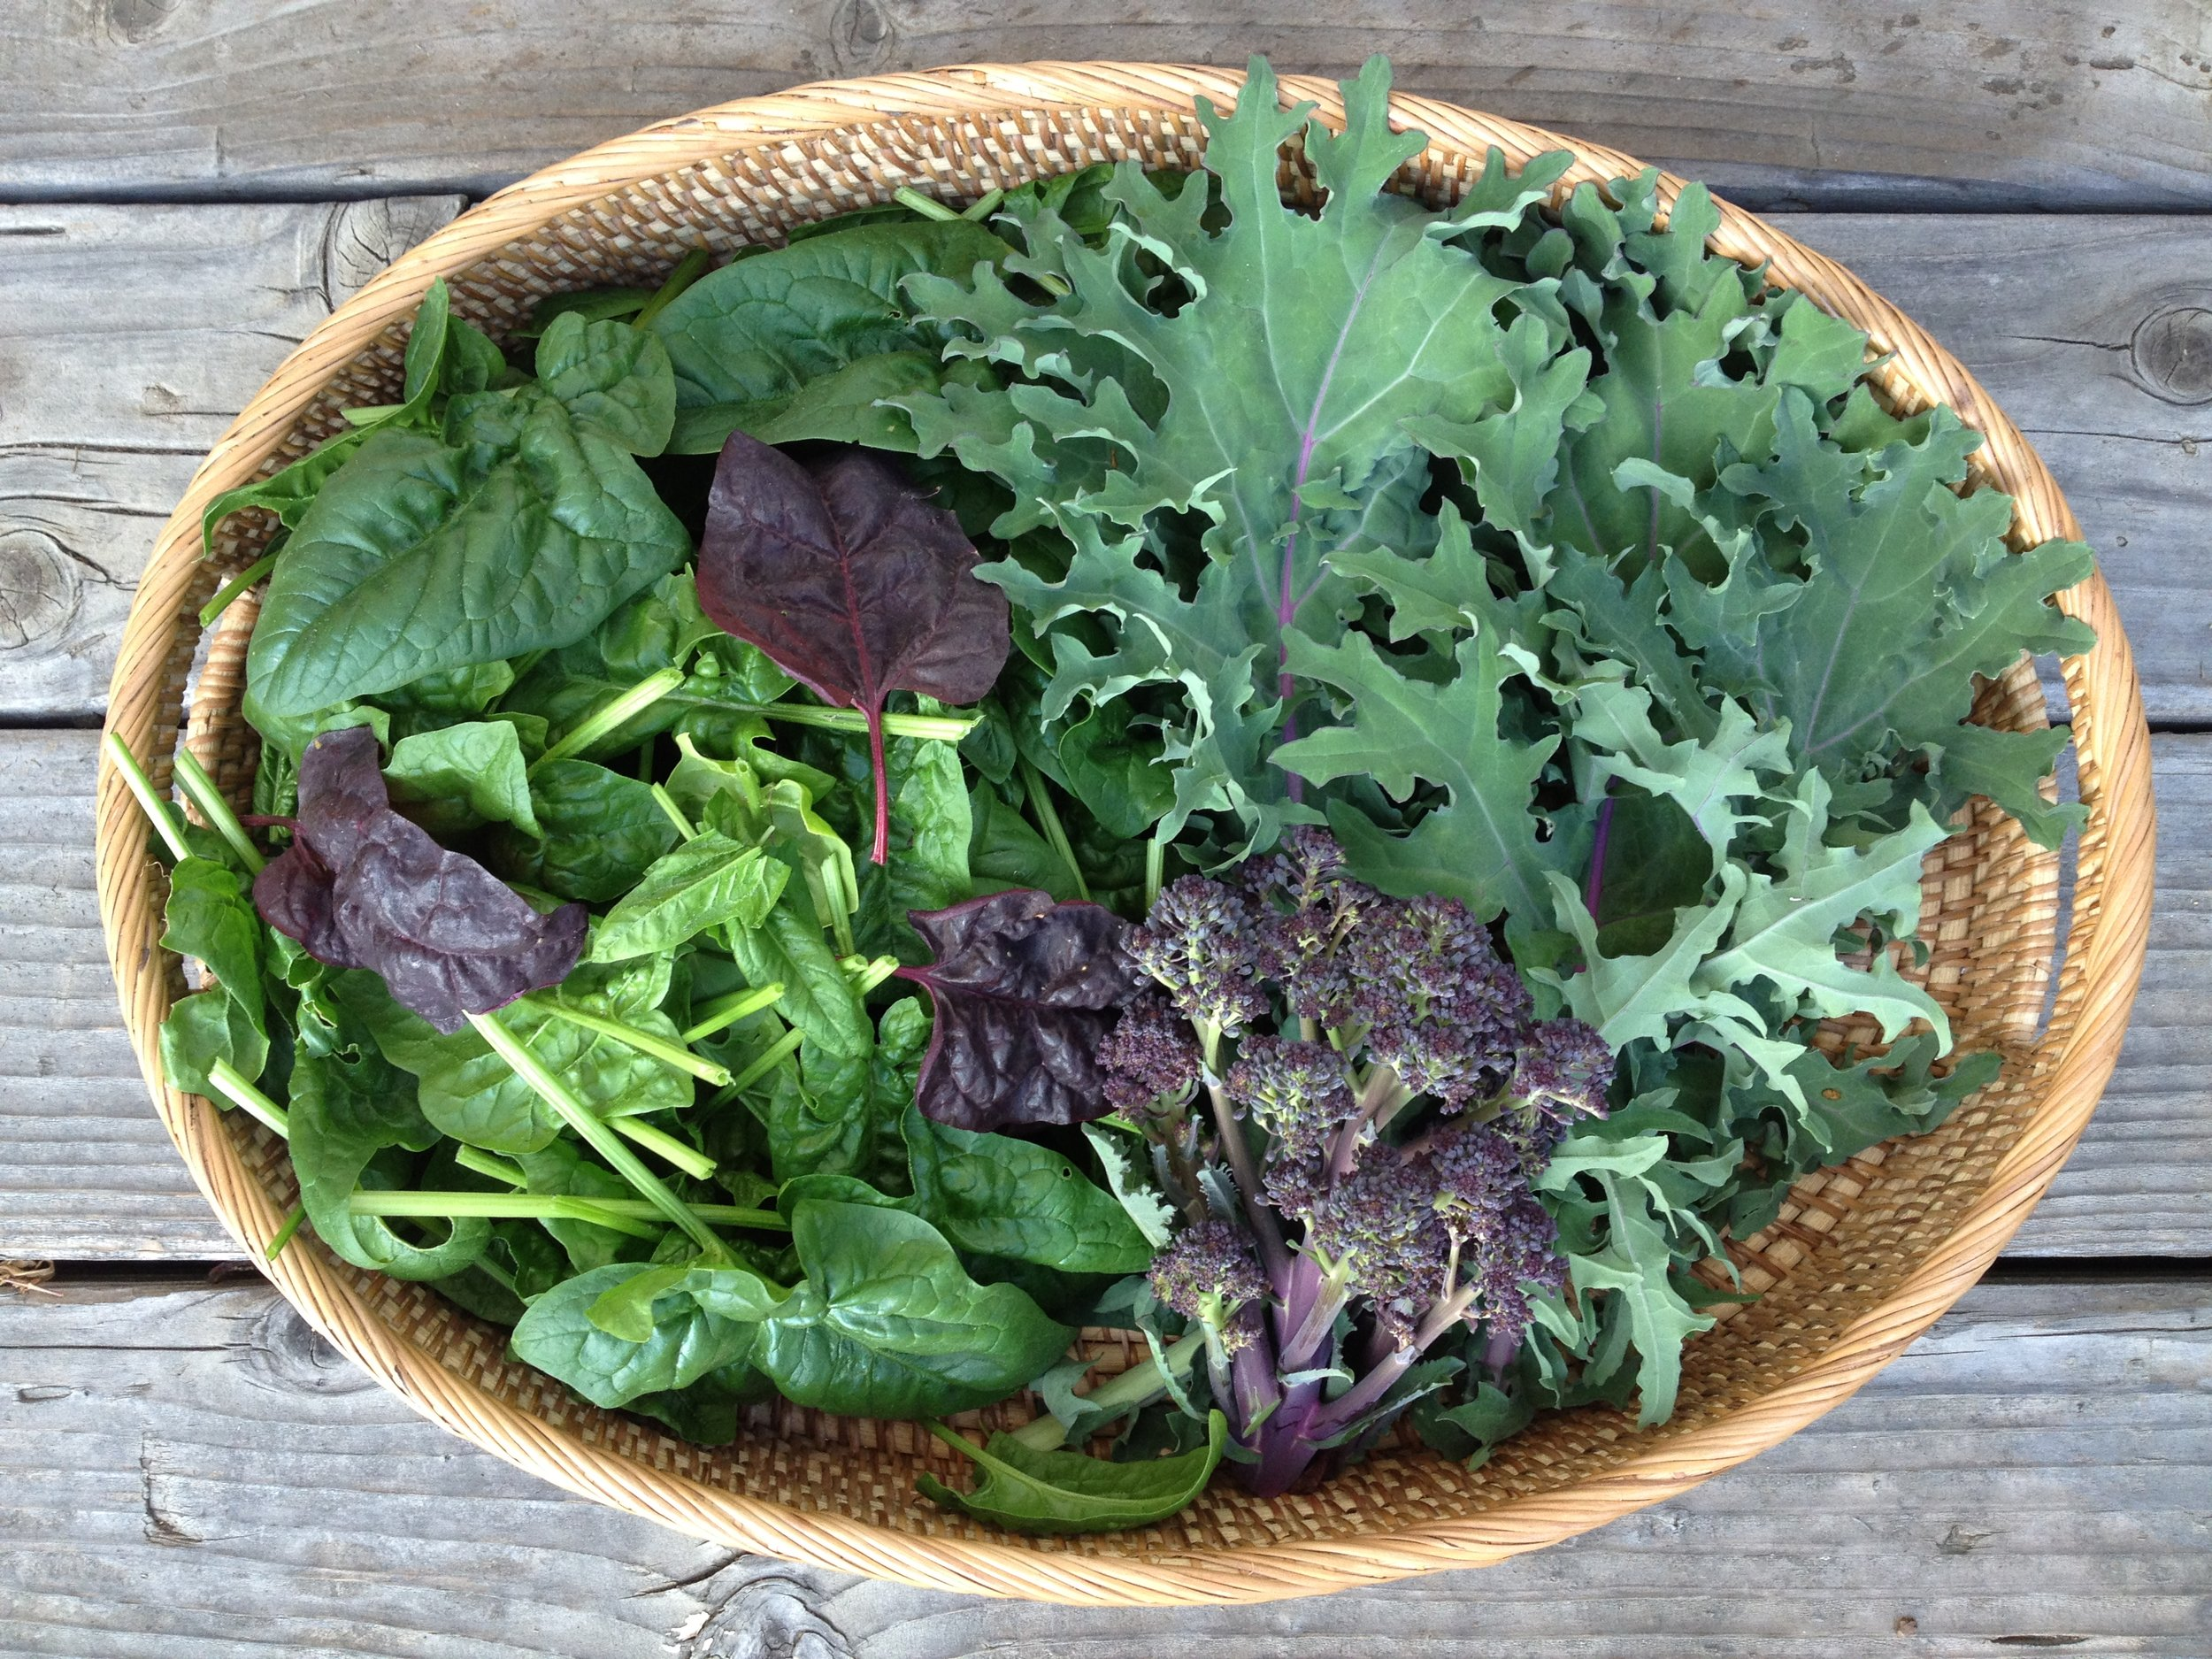 Purple-sprouting broccoli, spinach and red winter kale